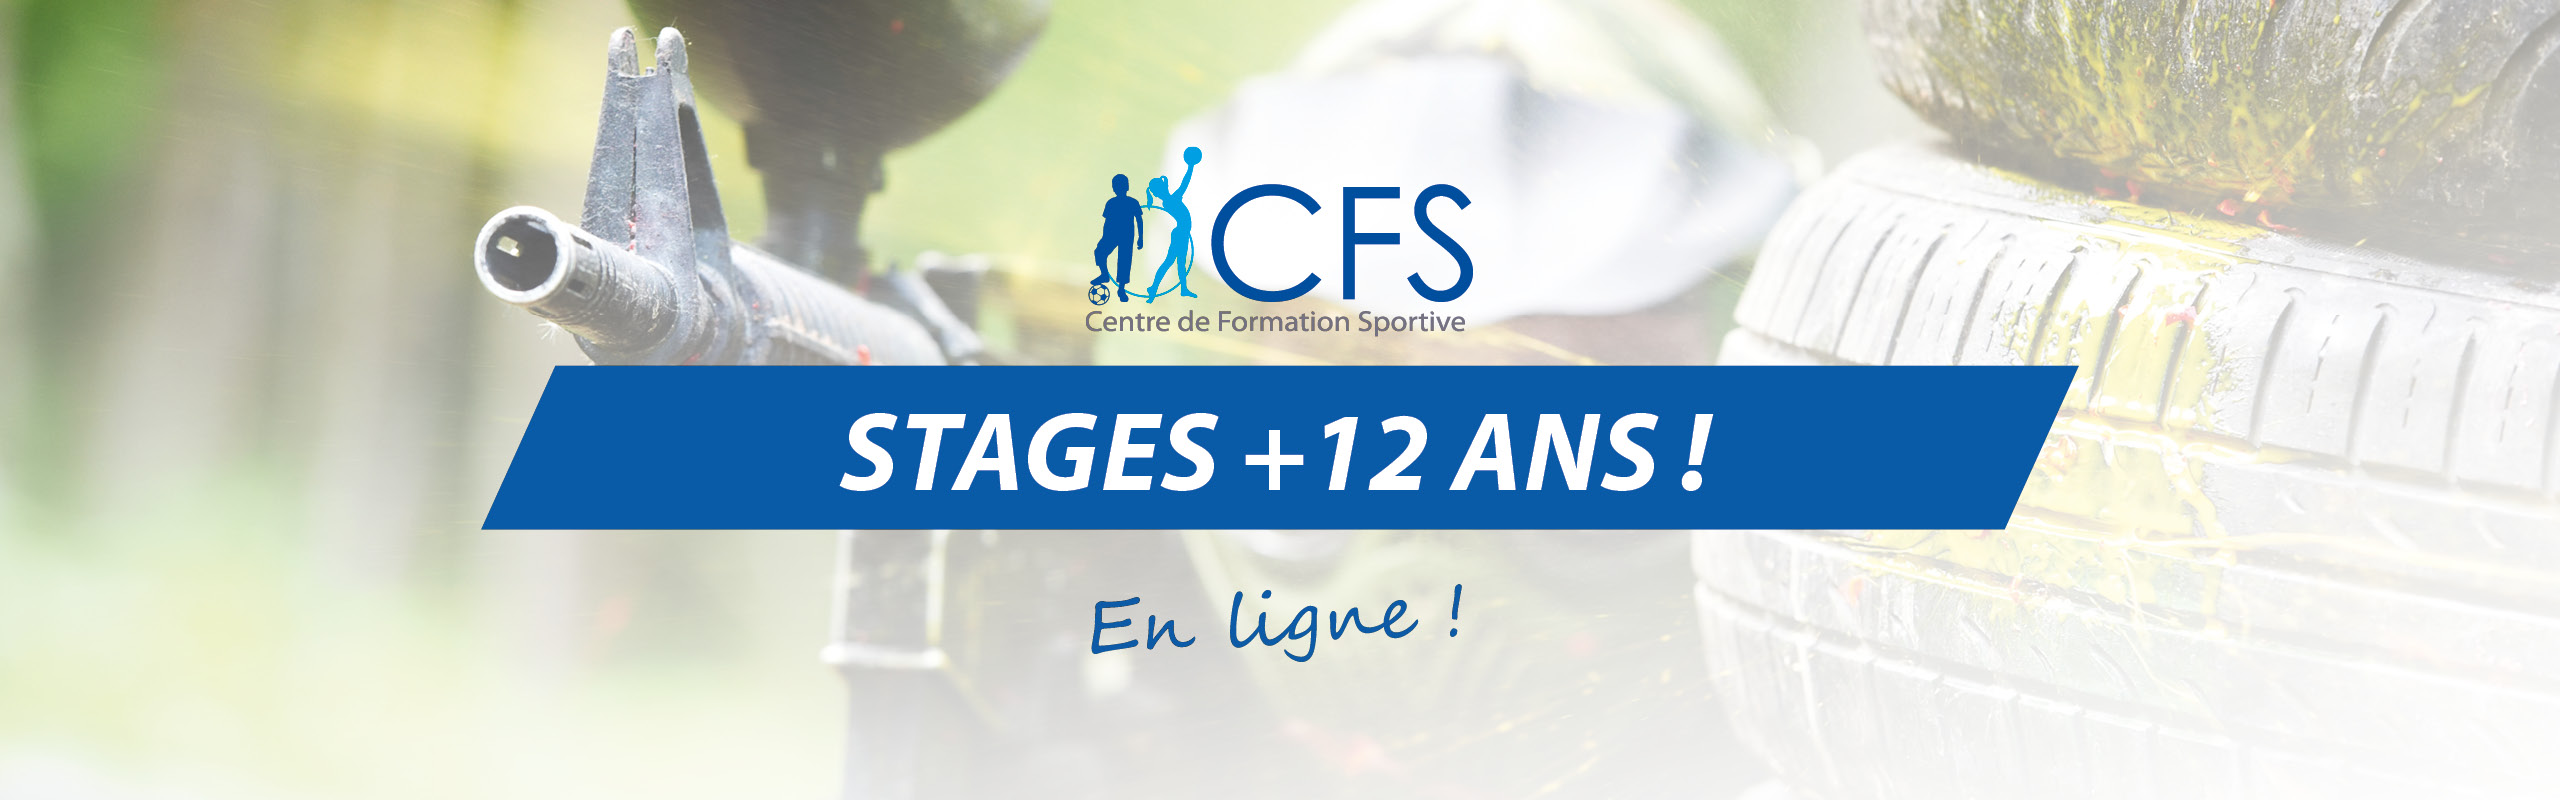 STAGES +12 ANS